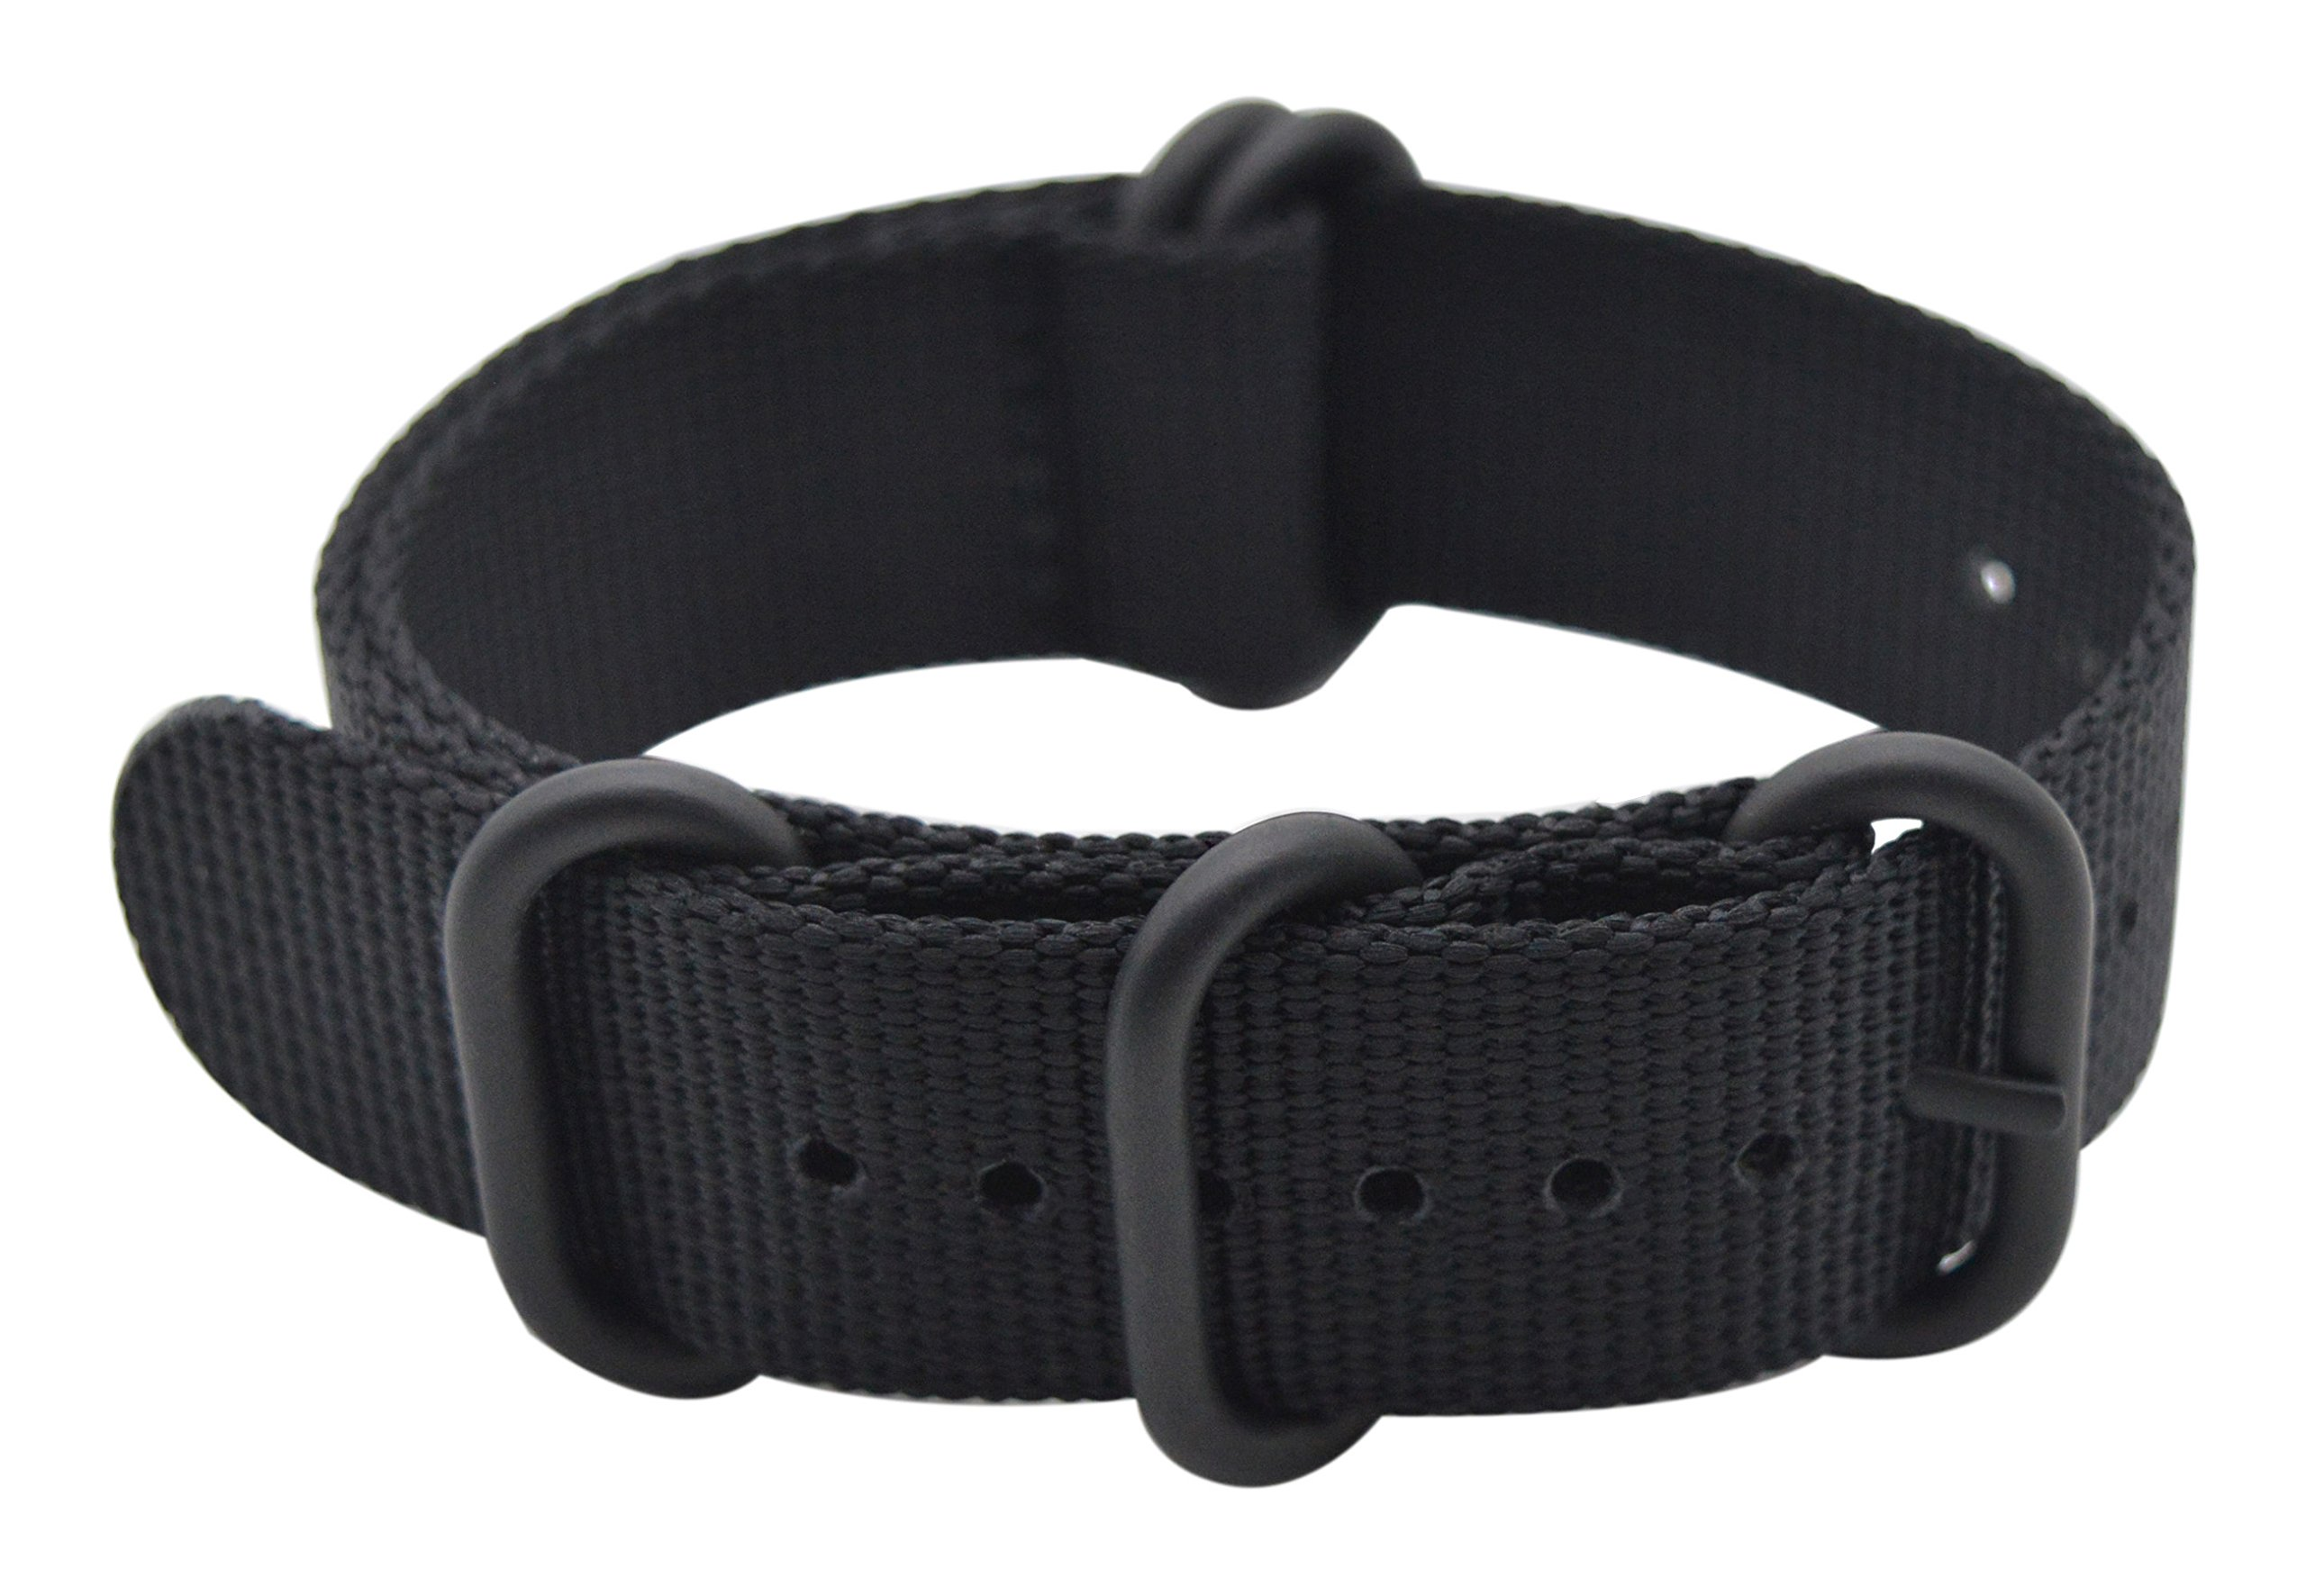 ArtStyle Watch Band with Ballistic Nylon Material Strap and High-End Black Buckle (Matte Finish) (Black, 22mm)